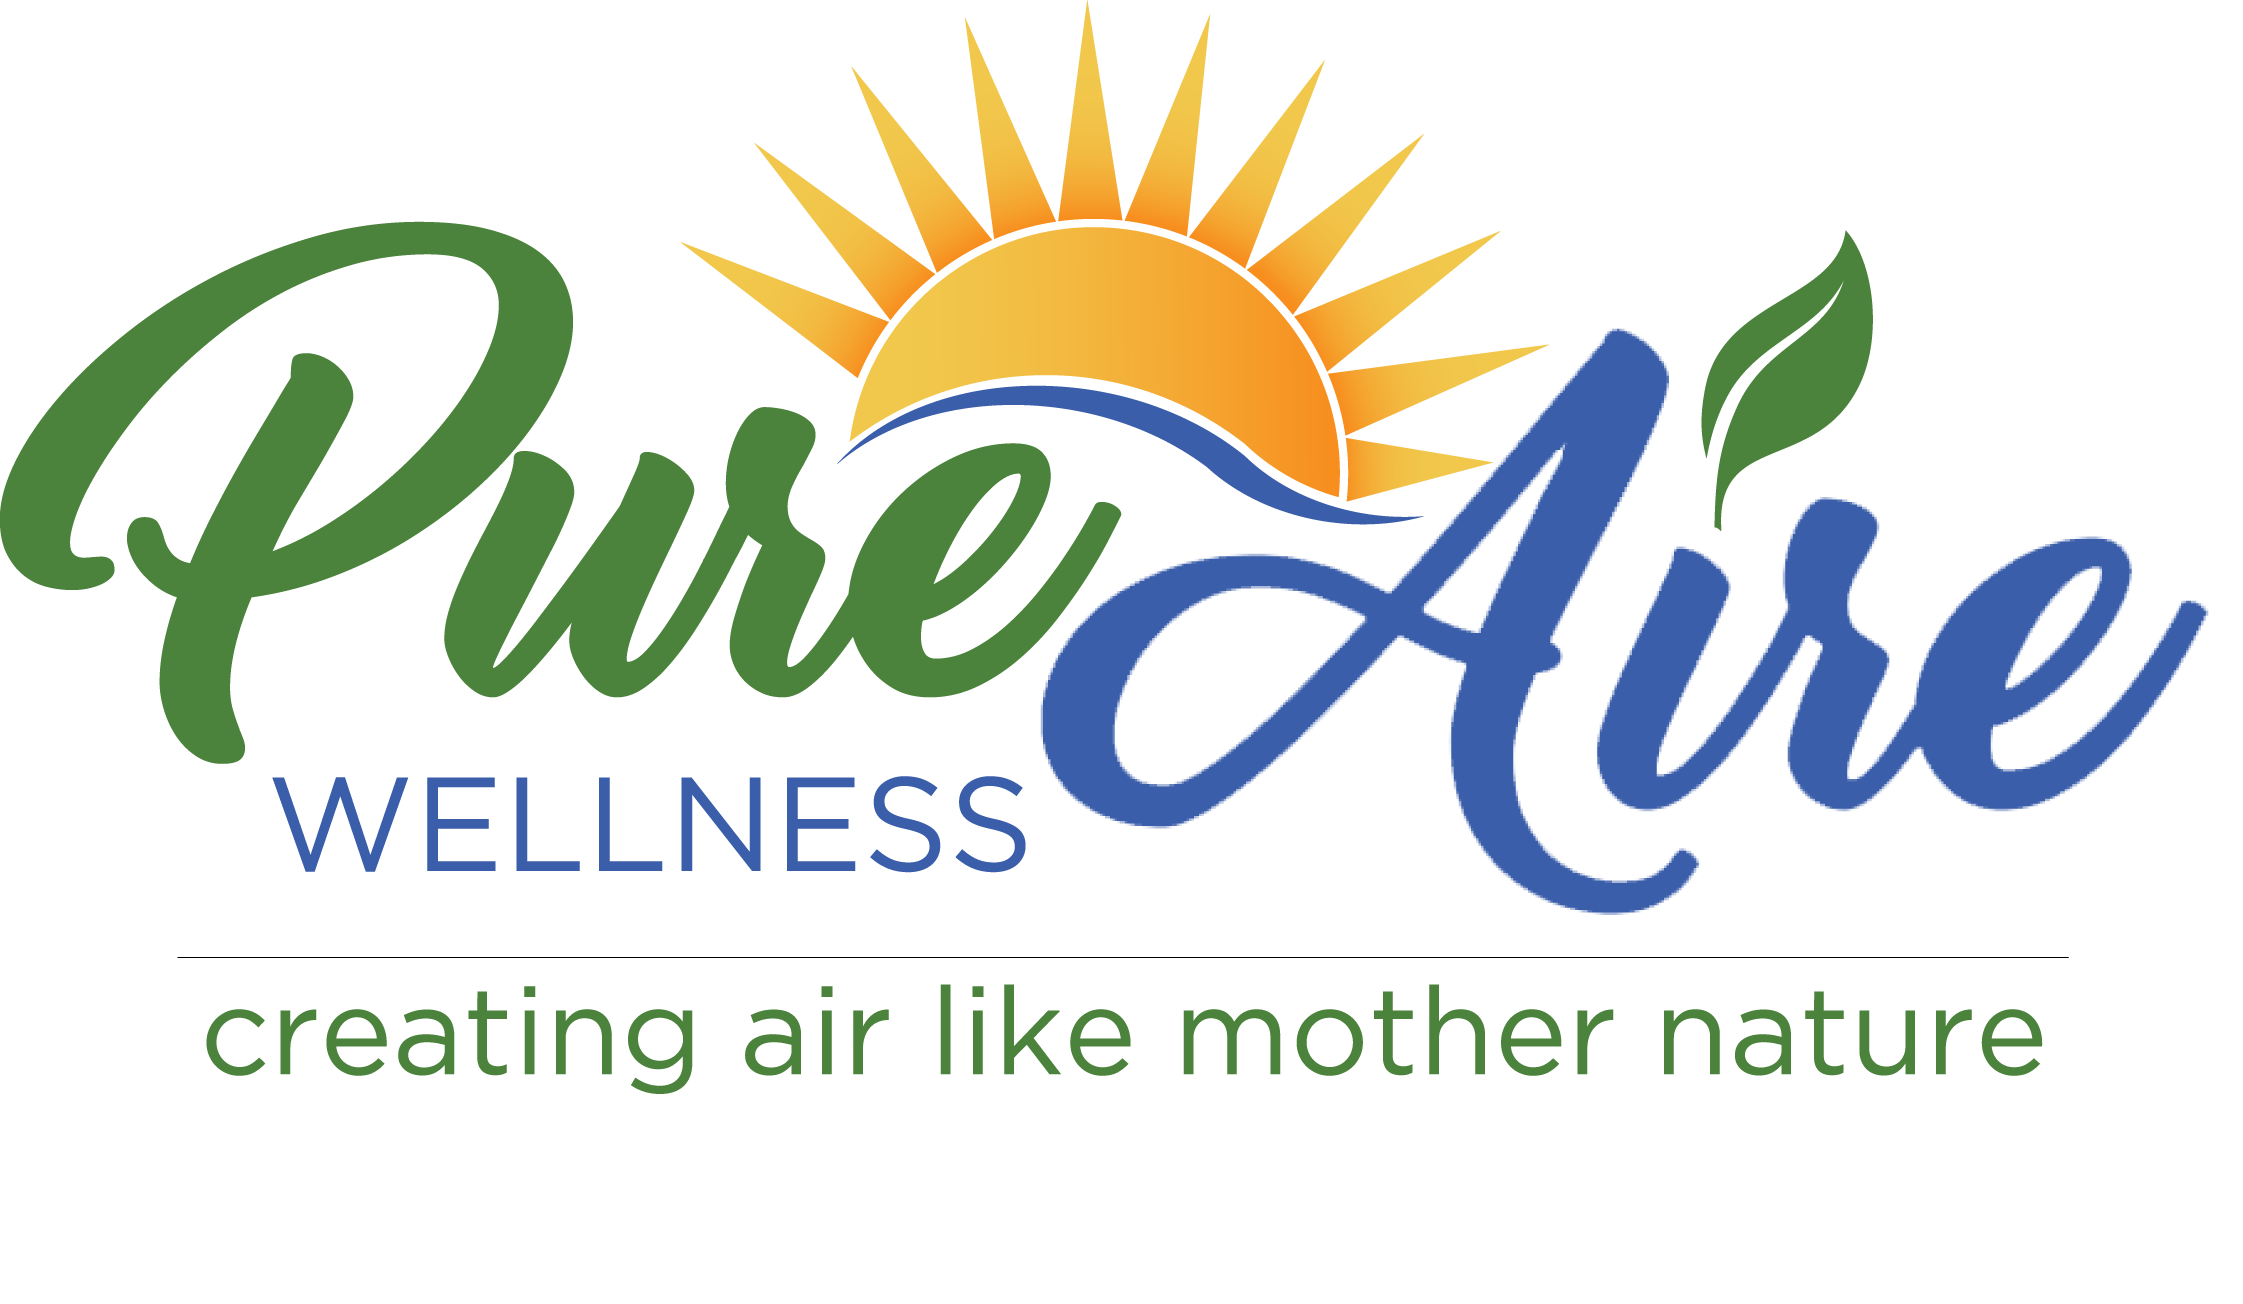 Pure Aire Wellness